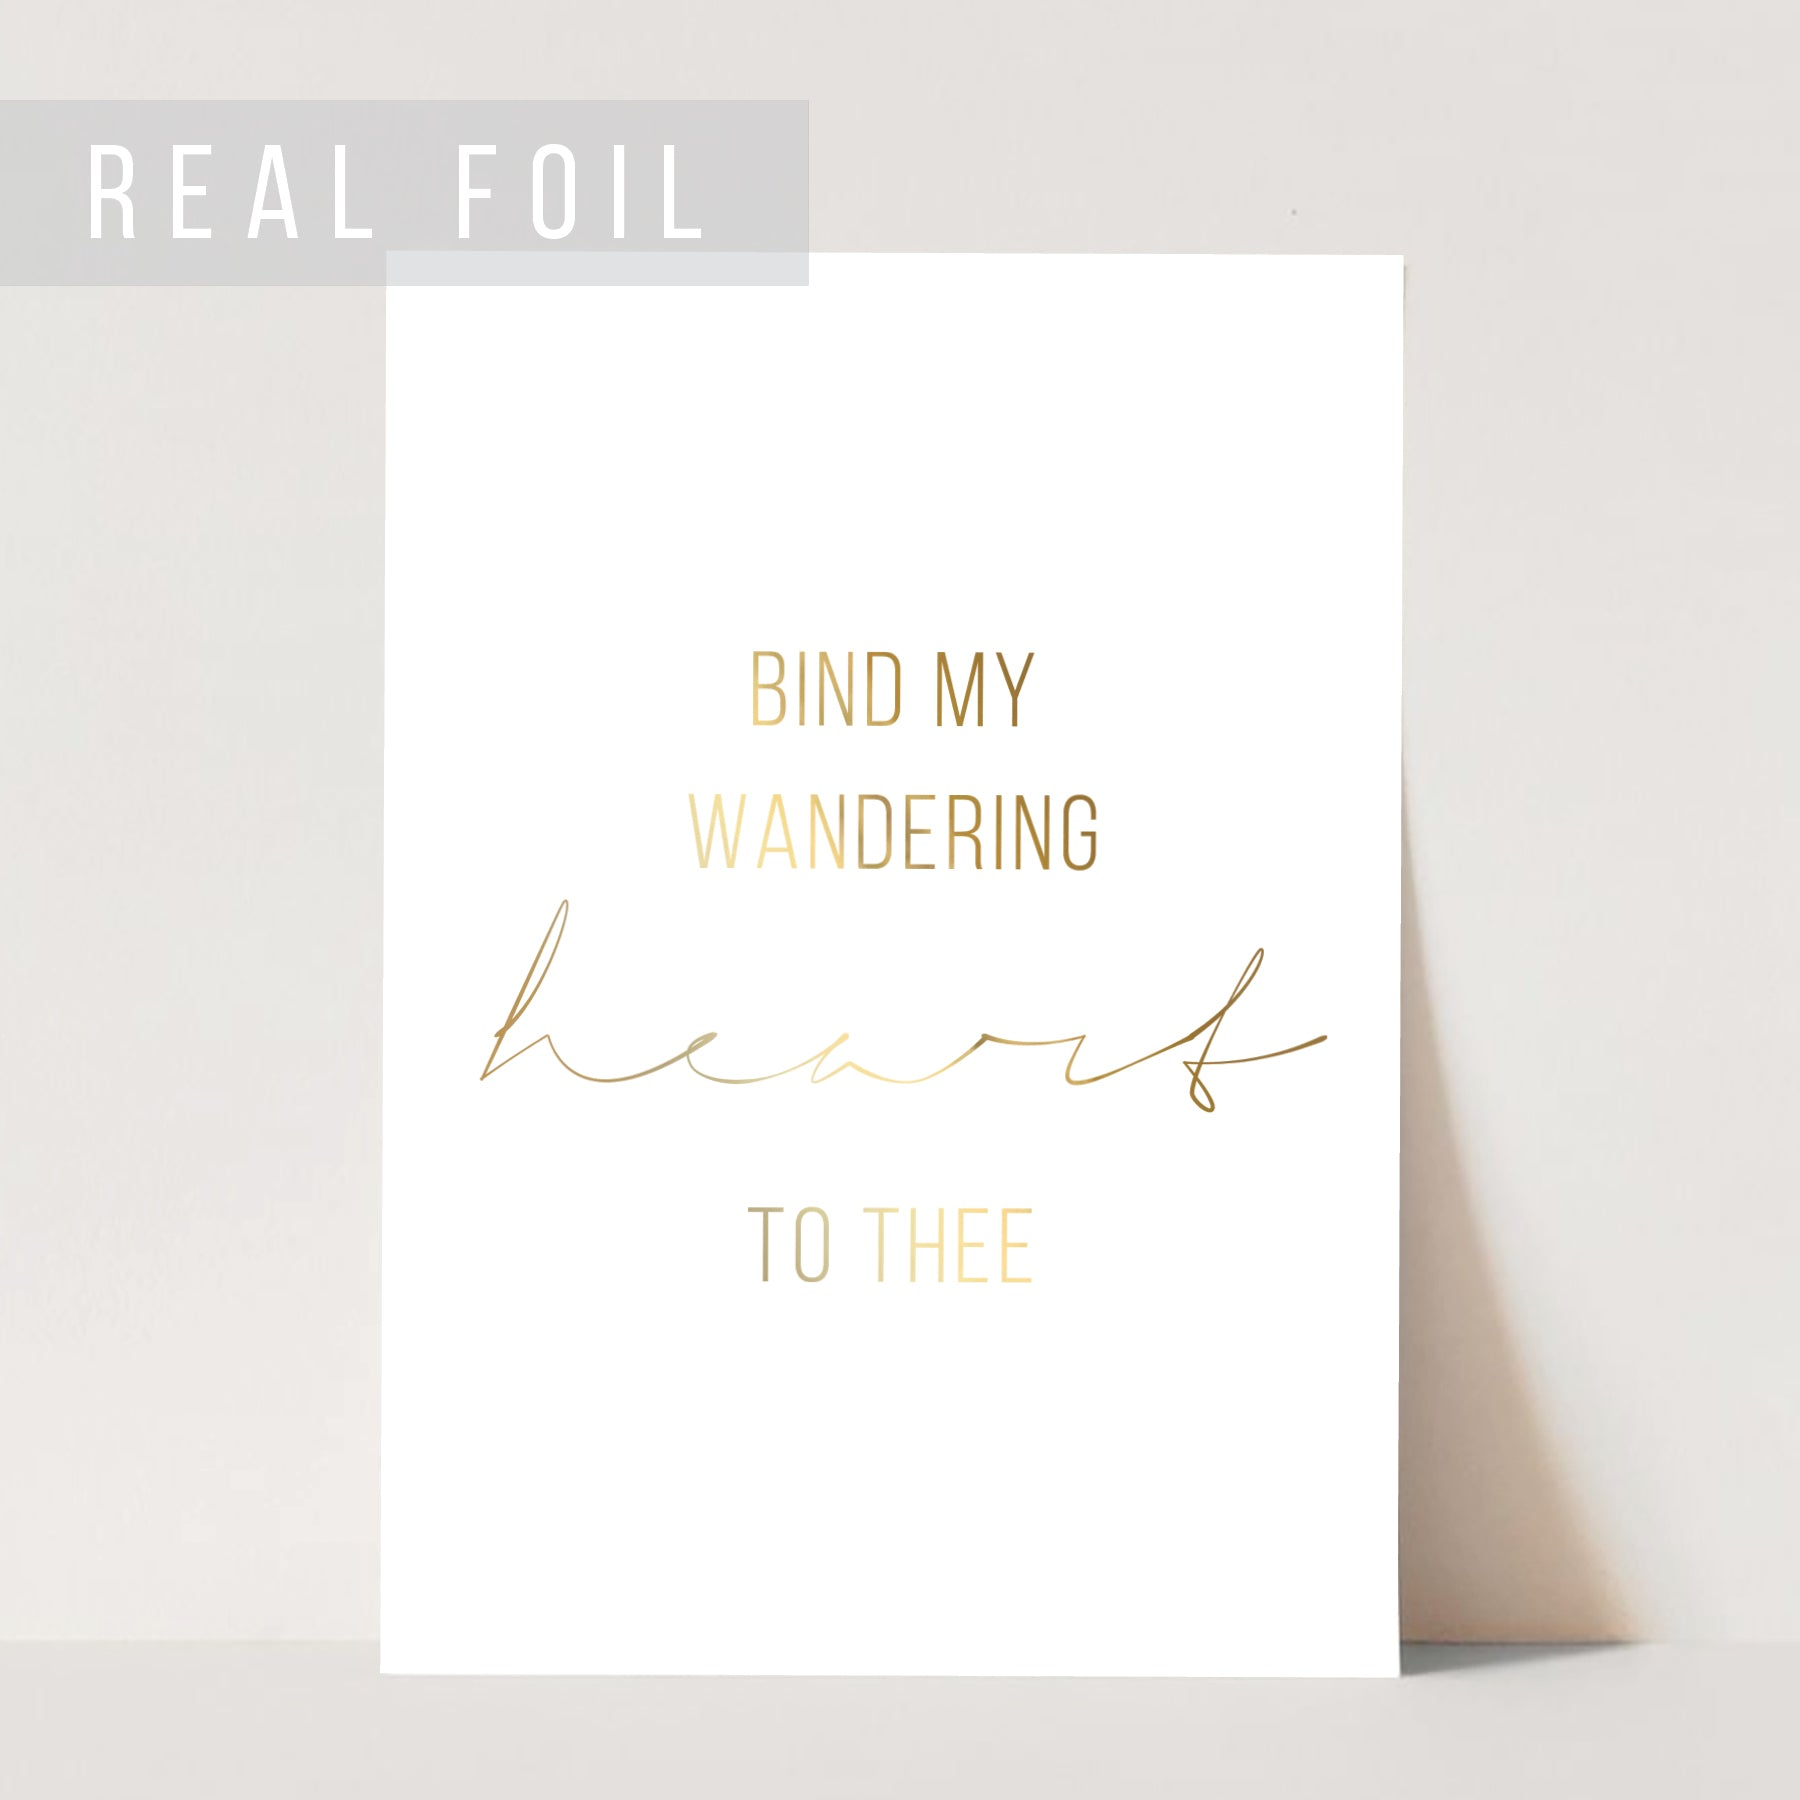 Bind My Wandering Heart to Thee Foiled Art Print